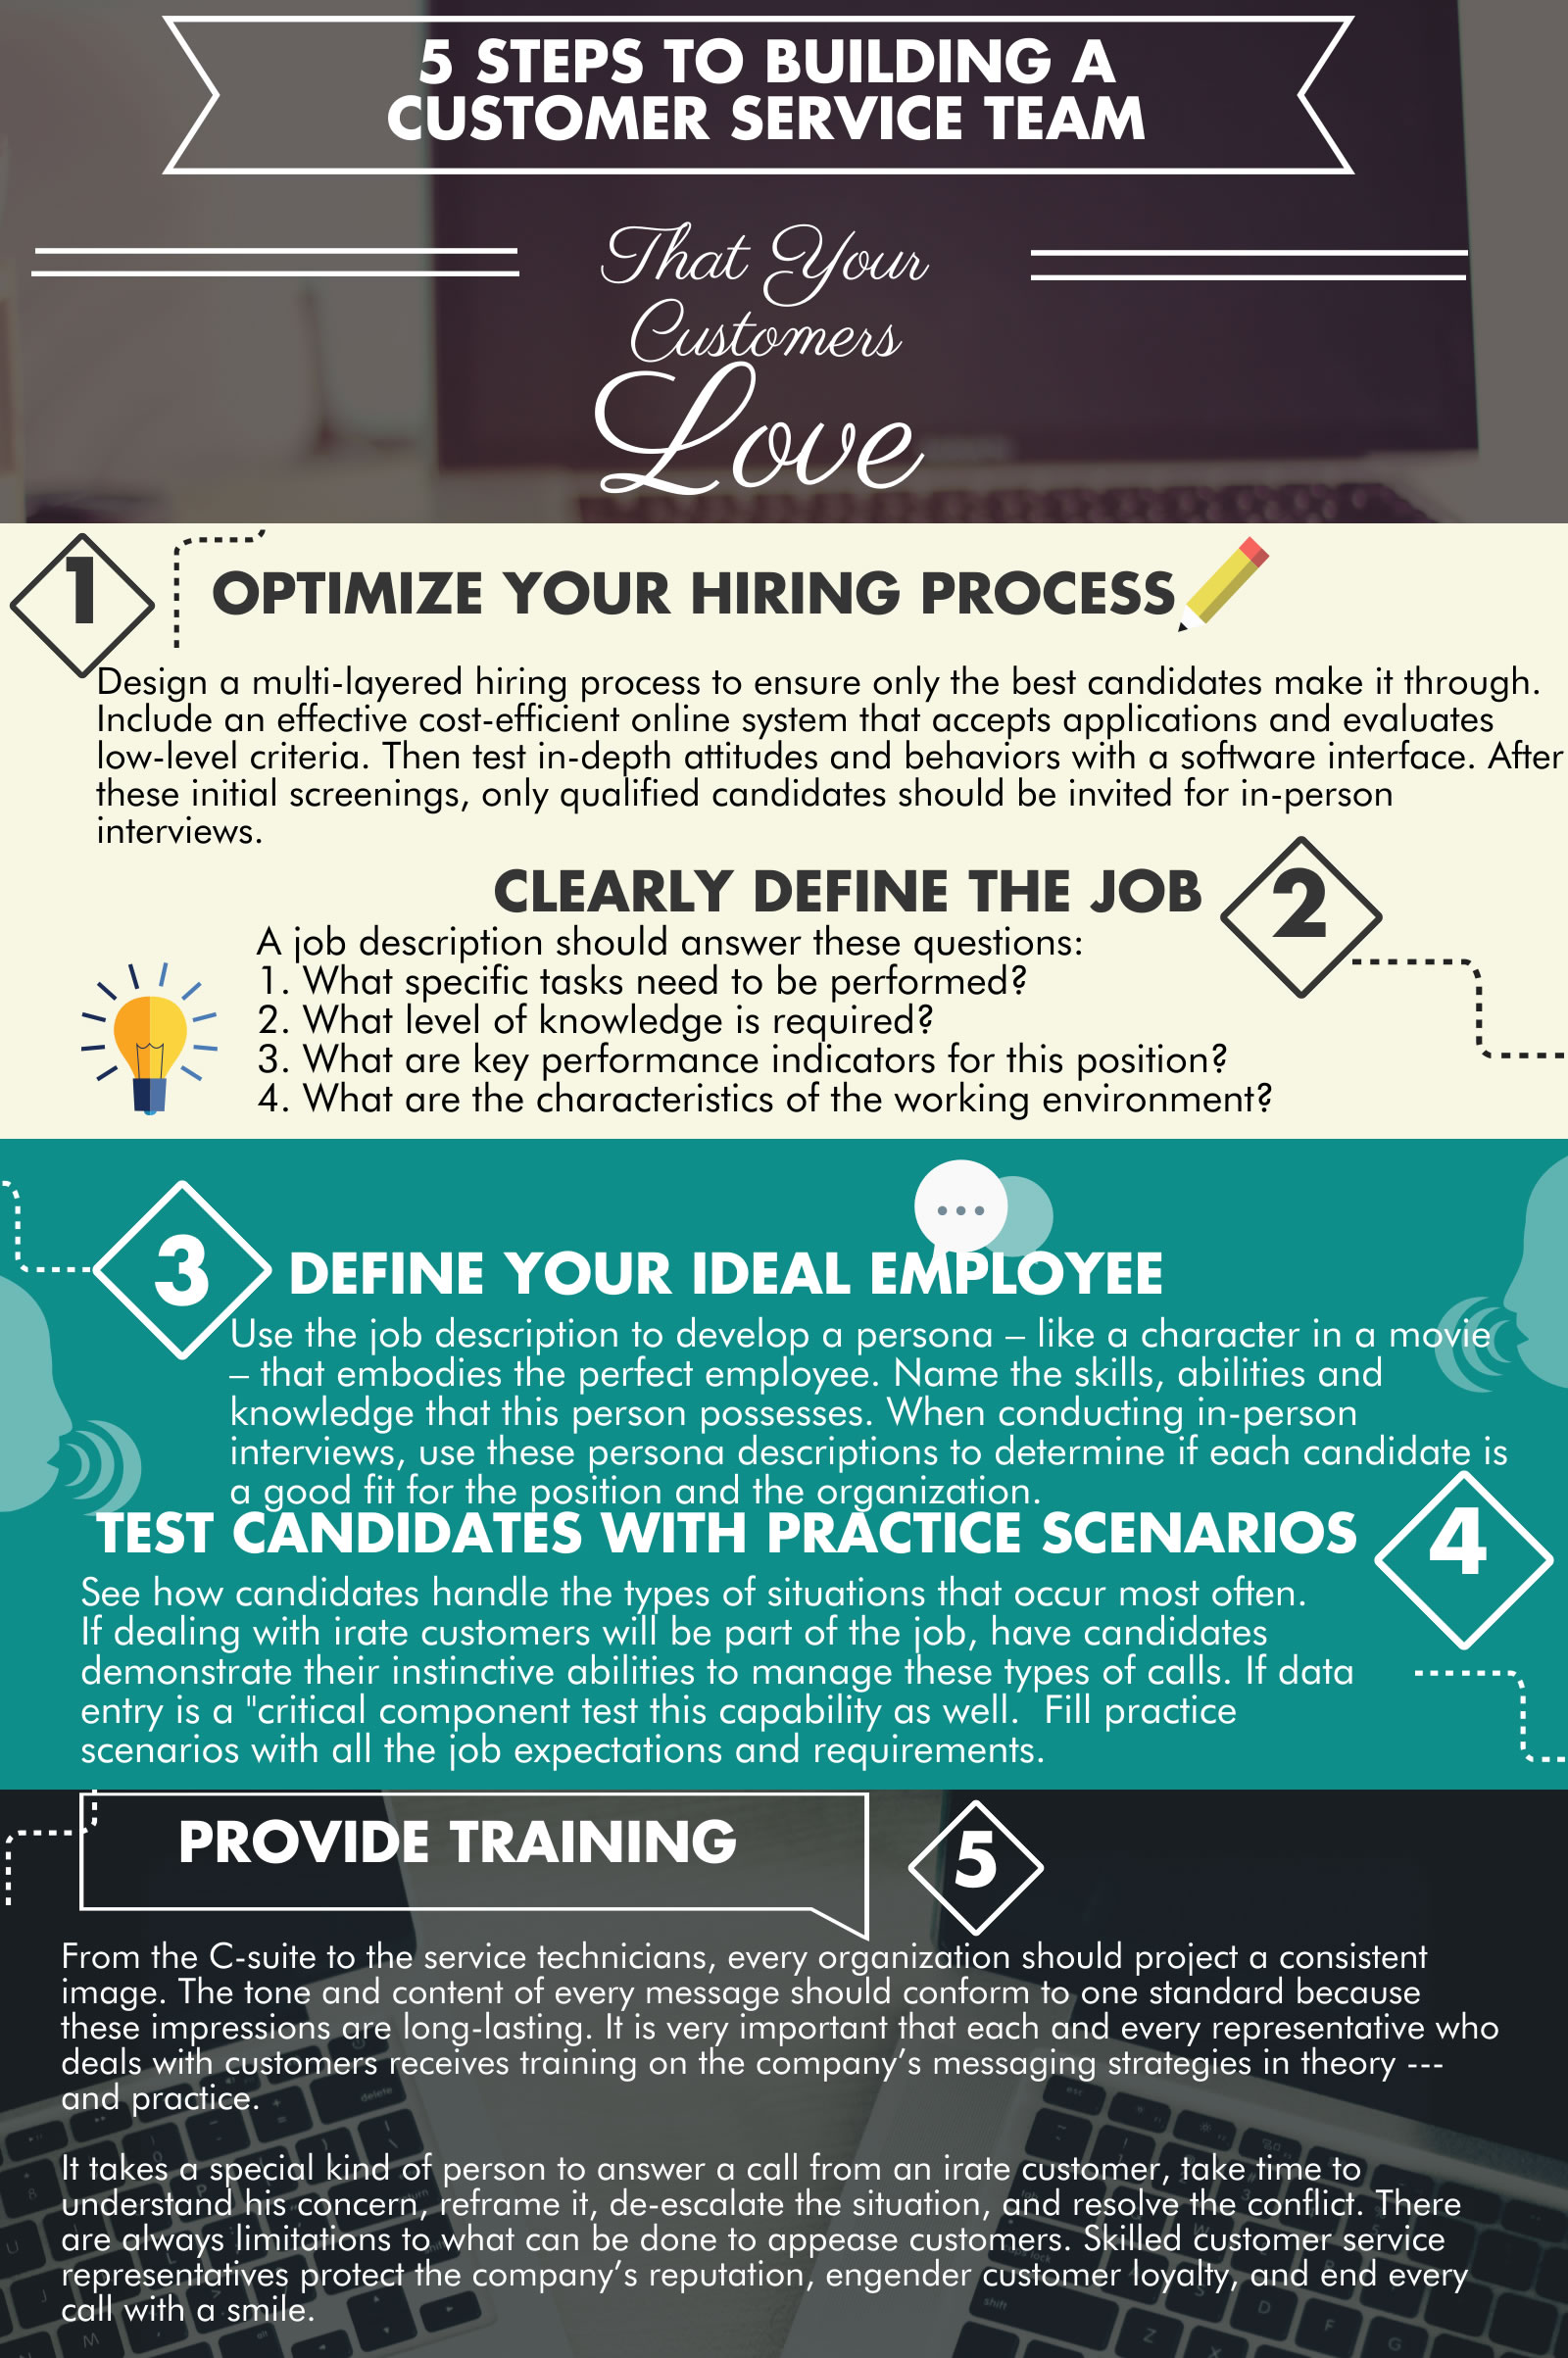 5 Steps to Build a Customer Service Team that Your Customers Love [INFOGRAPHIC]